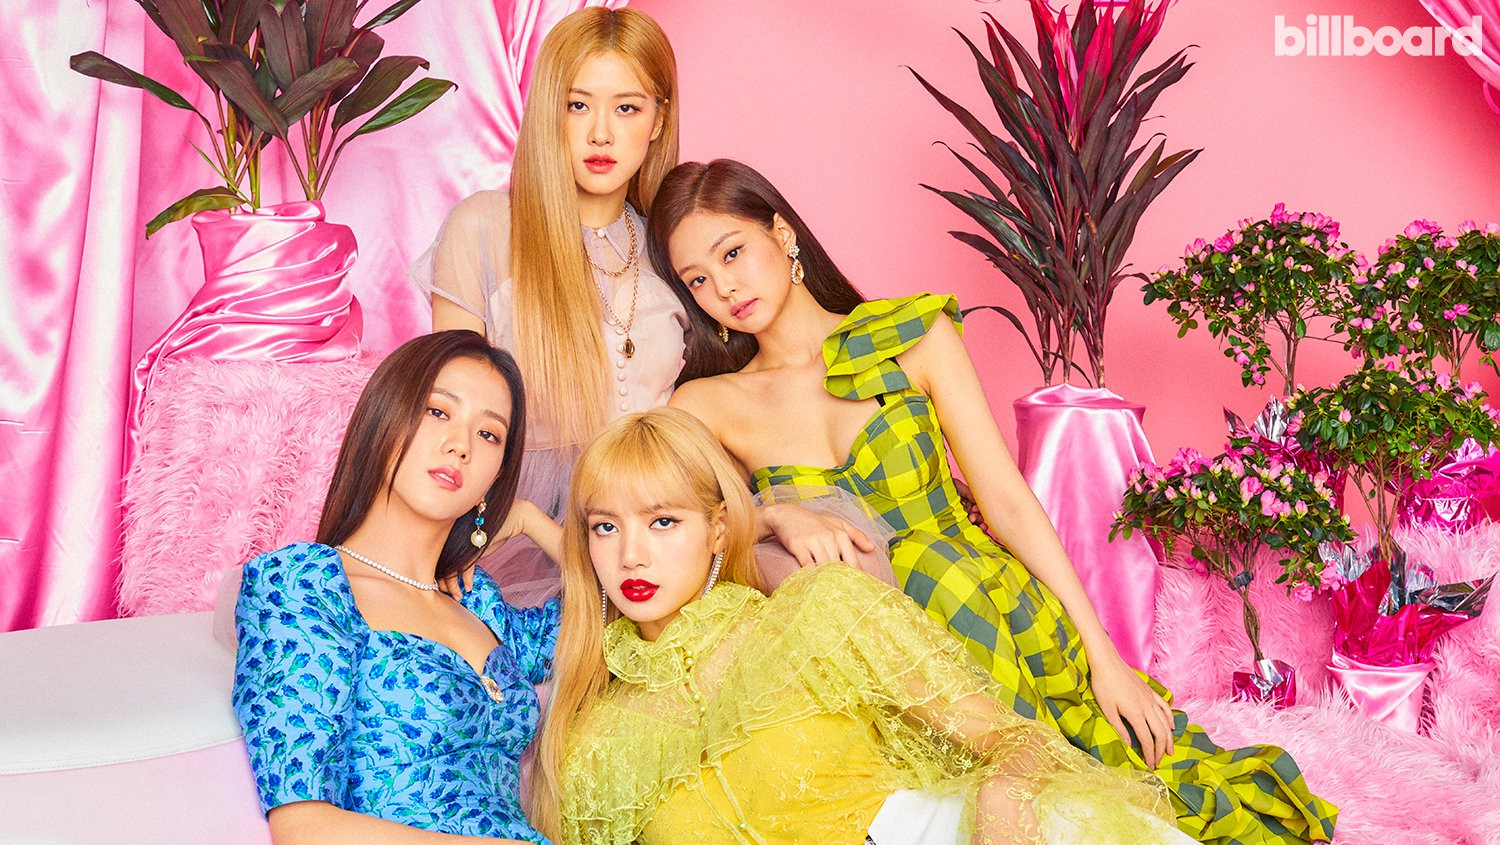 Black Pink was the first female Kpop girl to cover Billboard magazine's cover: beauty and charisma peak here! - Photo 2